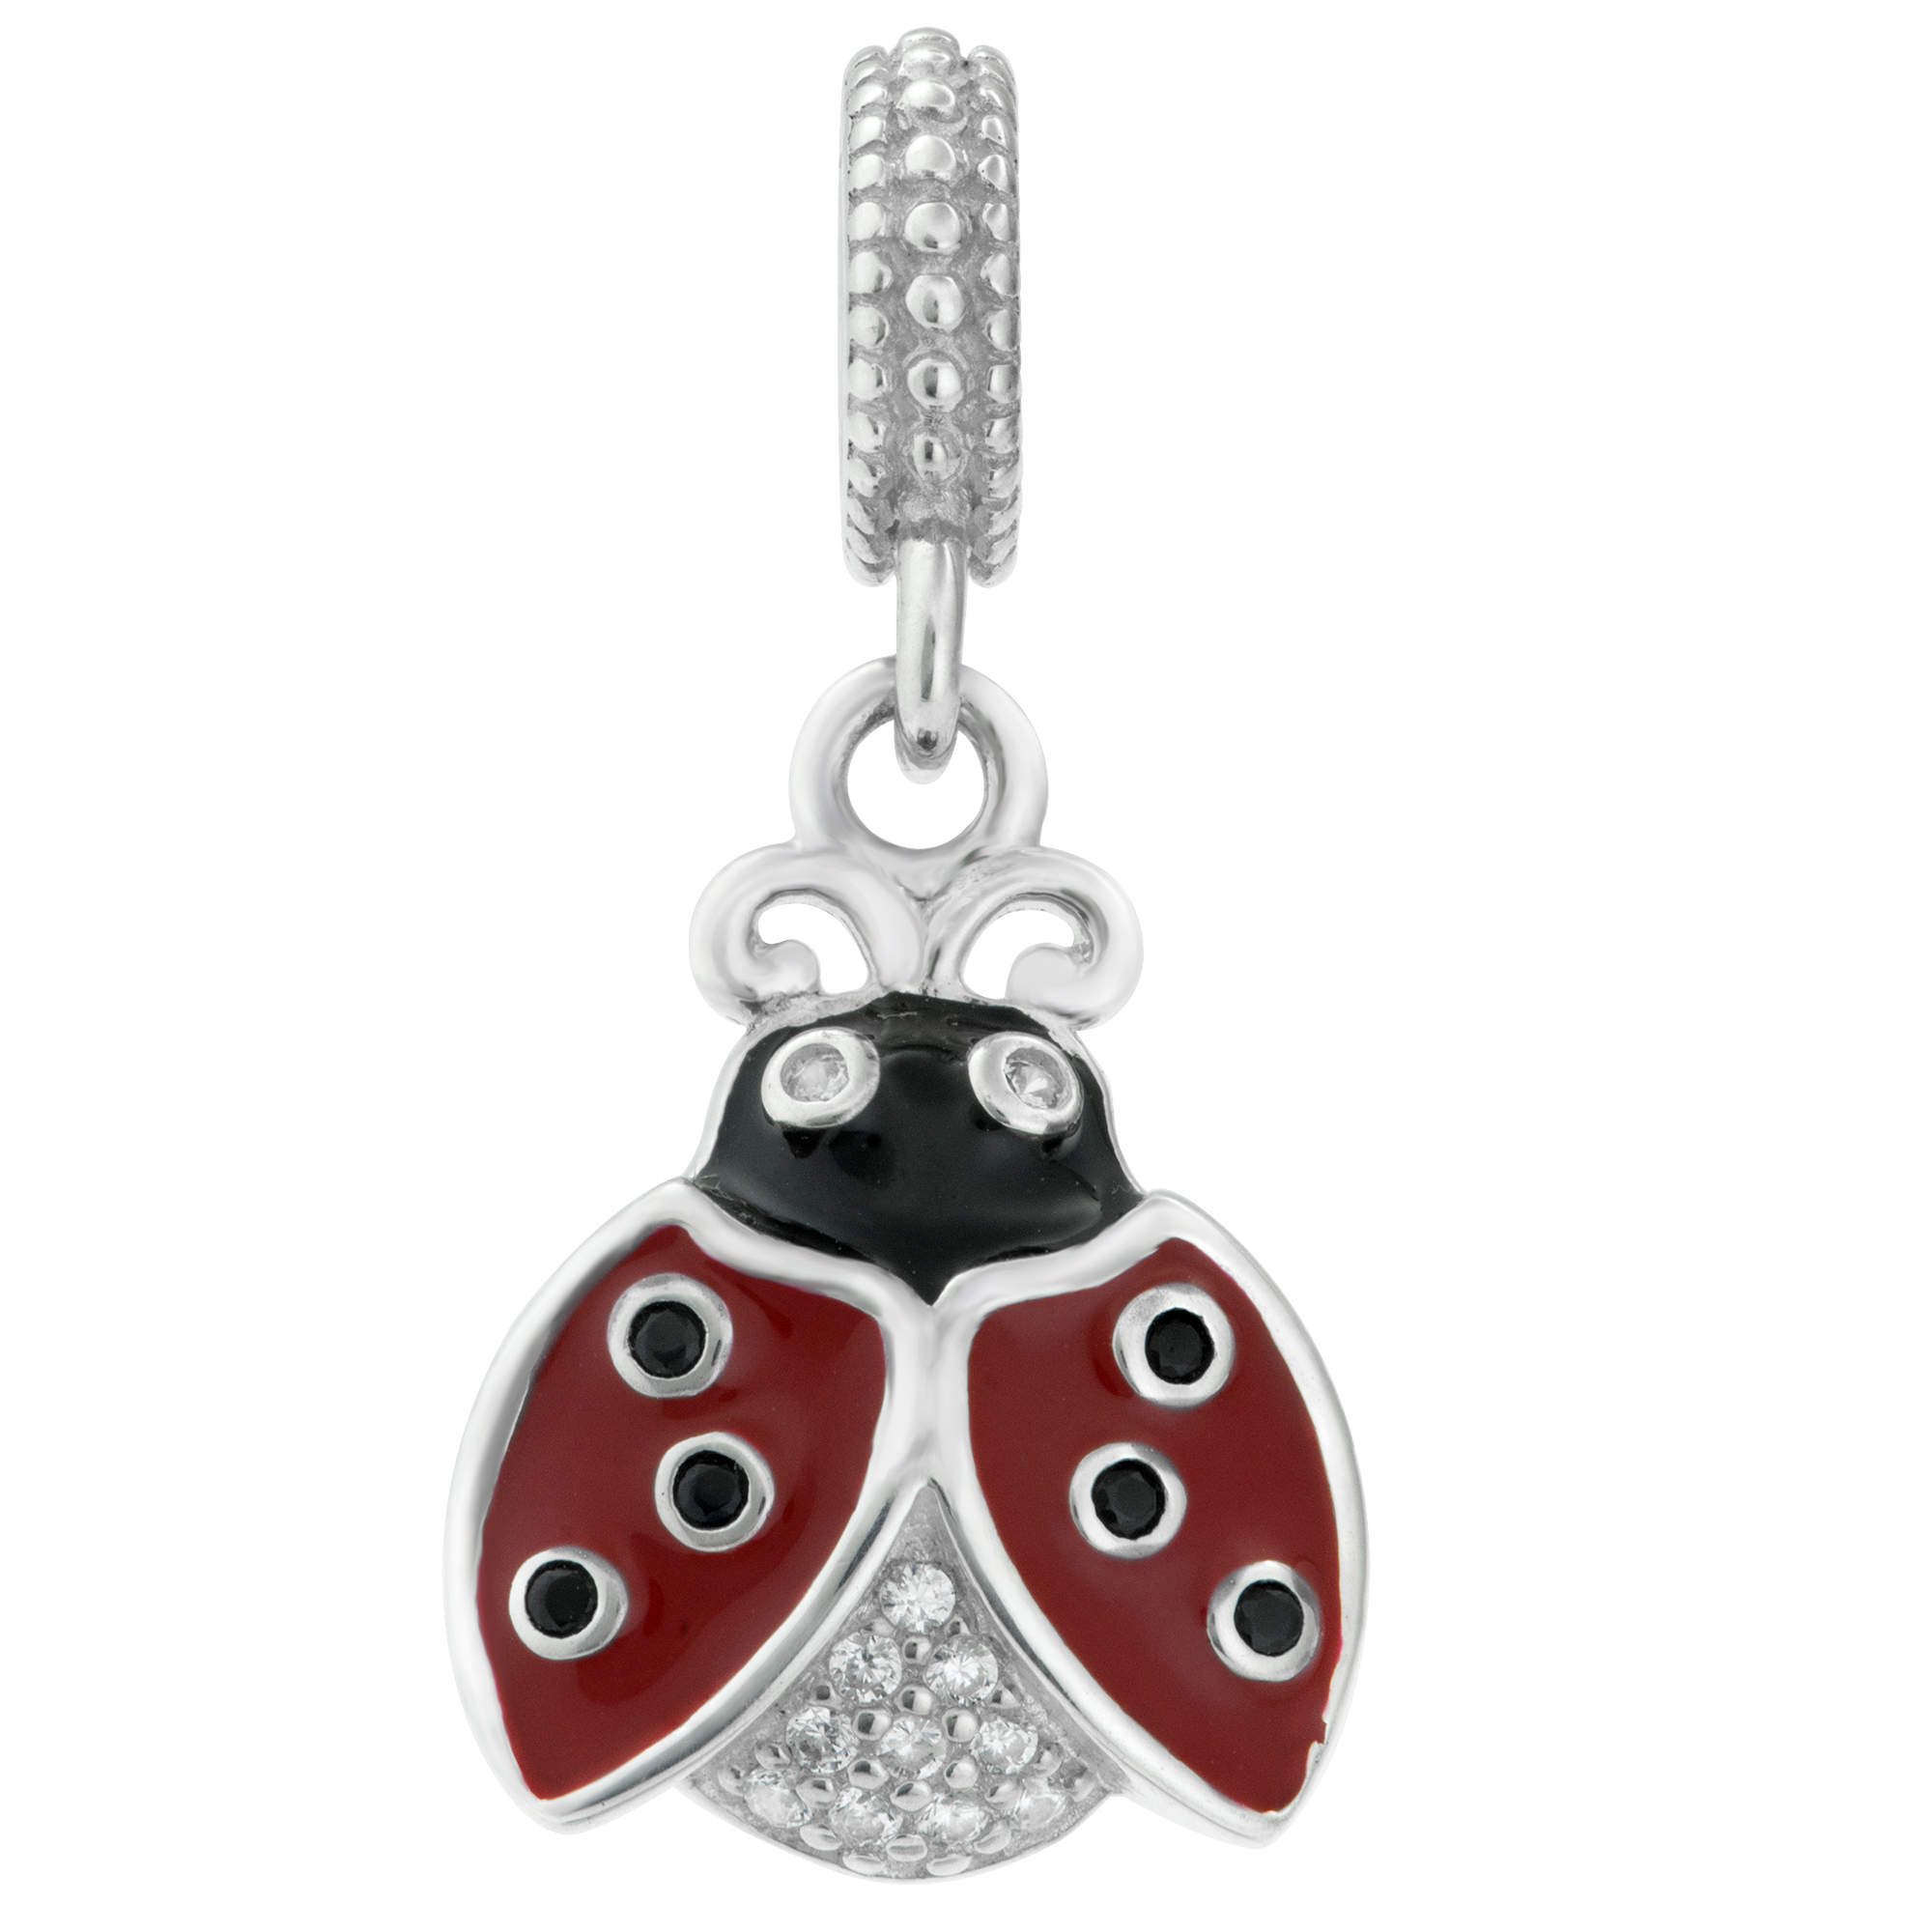 1x 925 Sterling Silver Lady Bug Enamel CZ Crystal Dangle Bead for European Charm Bracelets